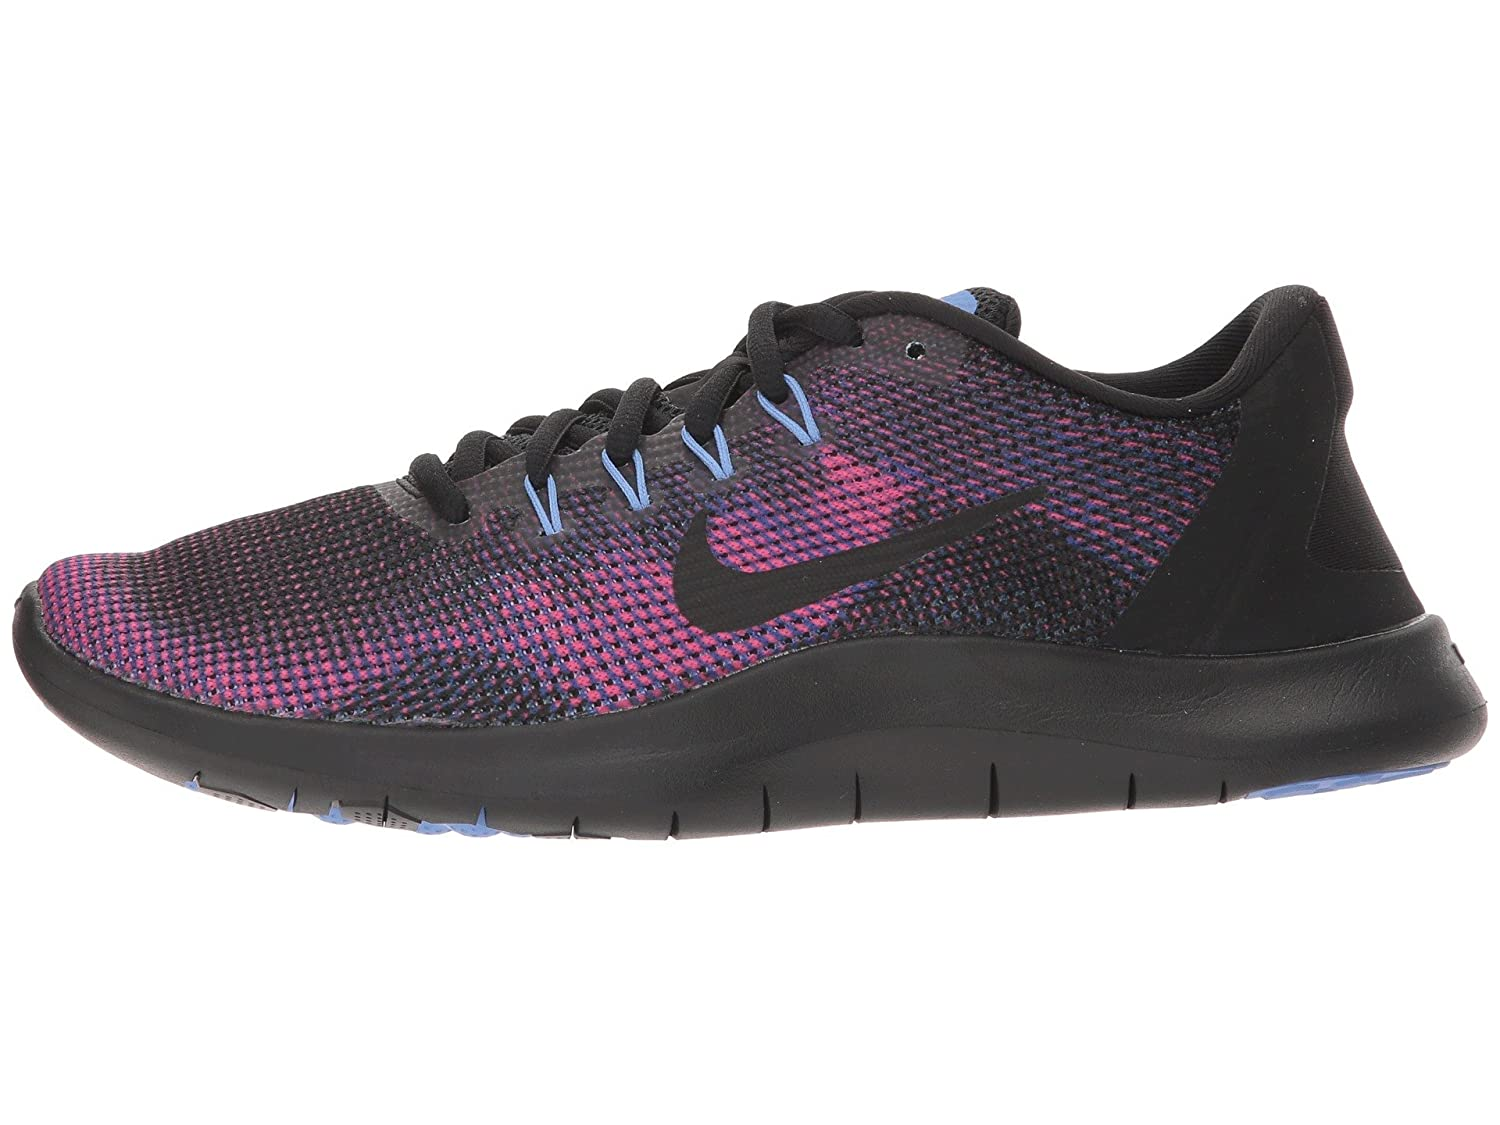 NIKE Women's Flex RN 8 2018 Running Shoe B078JXJV3D 8 RN M US|Black/Royal Pulse/Deep Royal Blue 737f3d